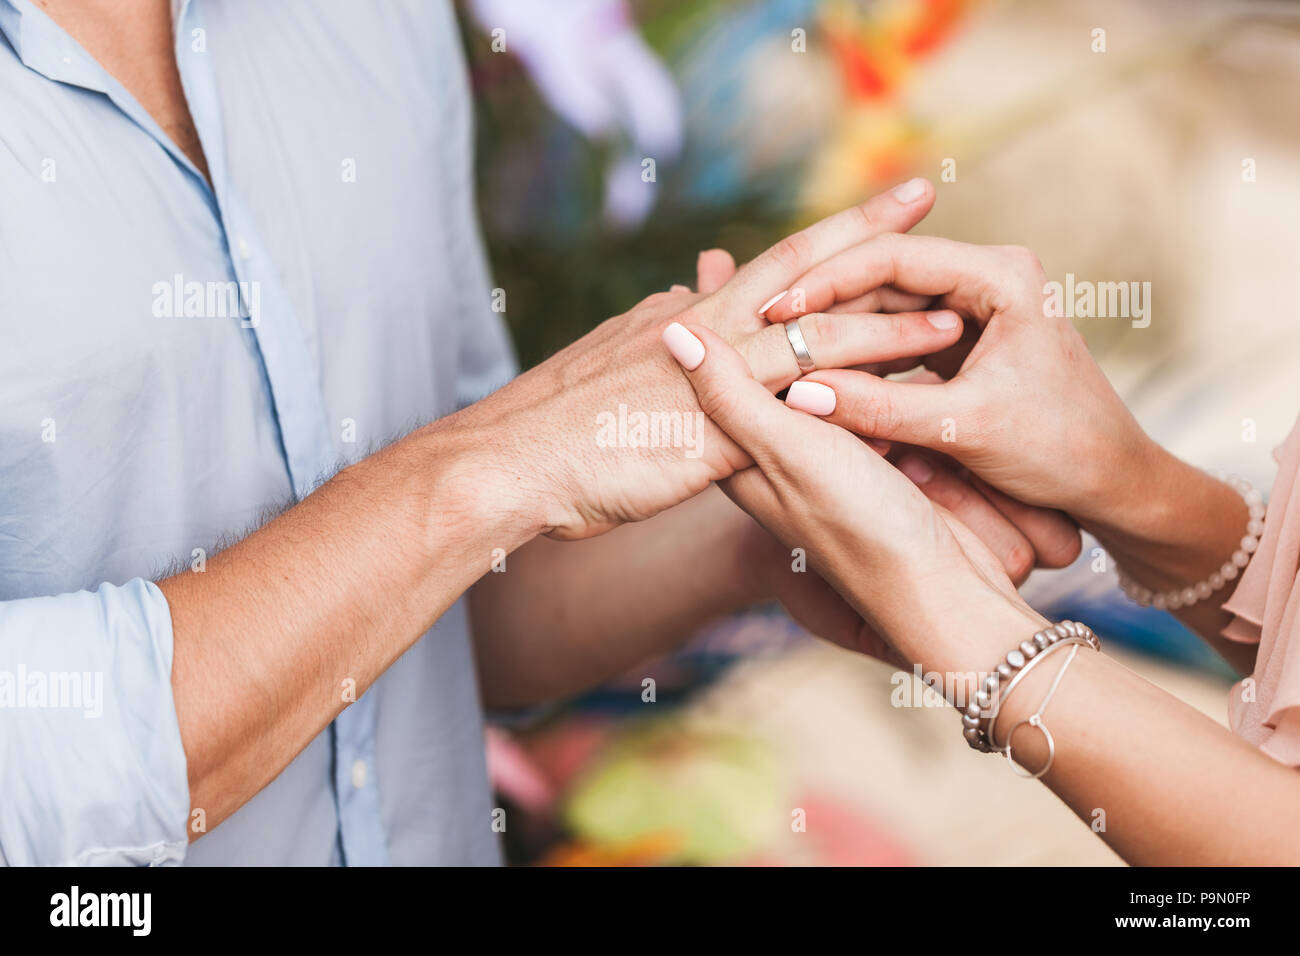 Woman wearing ring on man's hand on wedding ceremony close-up - Stock Image